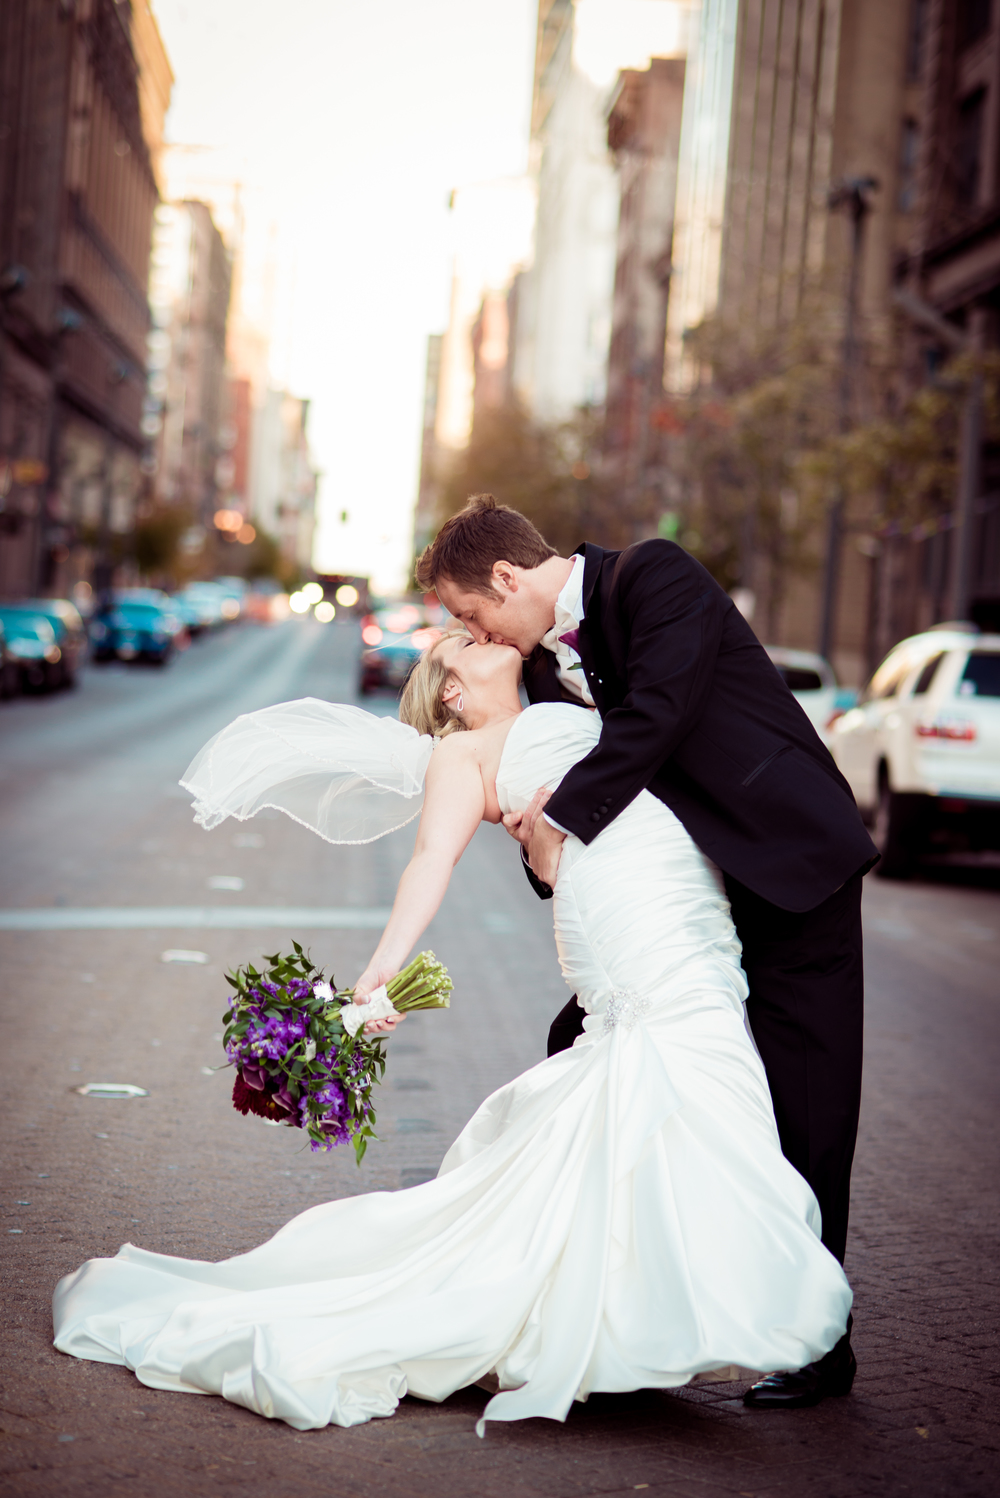 winner5_washington-avenue-stl-street-road-wedding-bride-groom